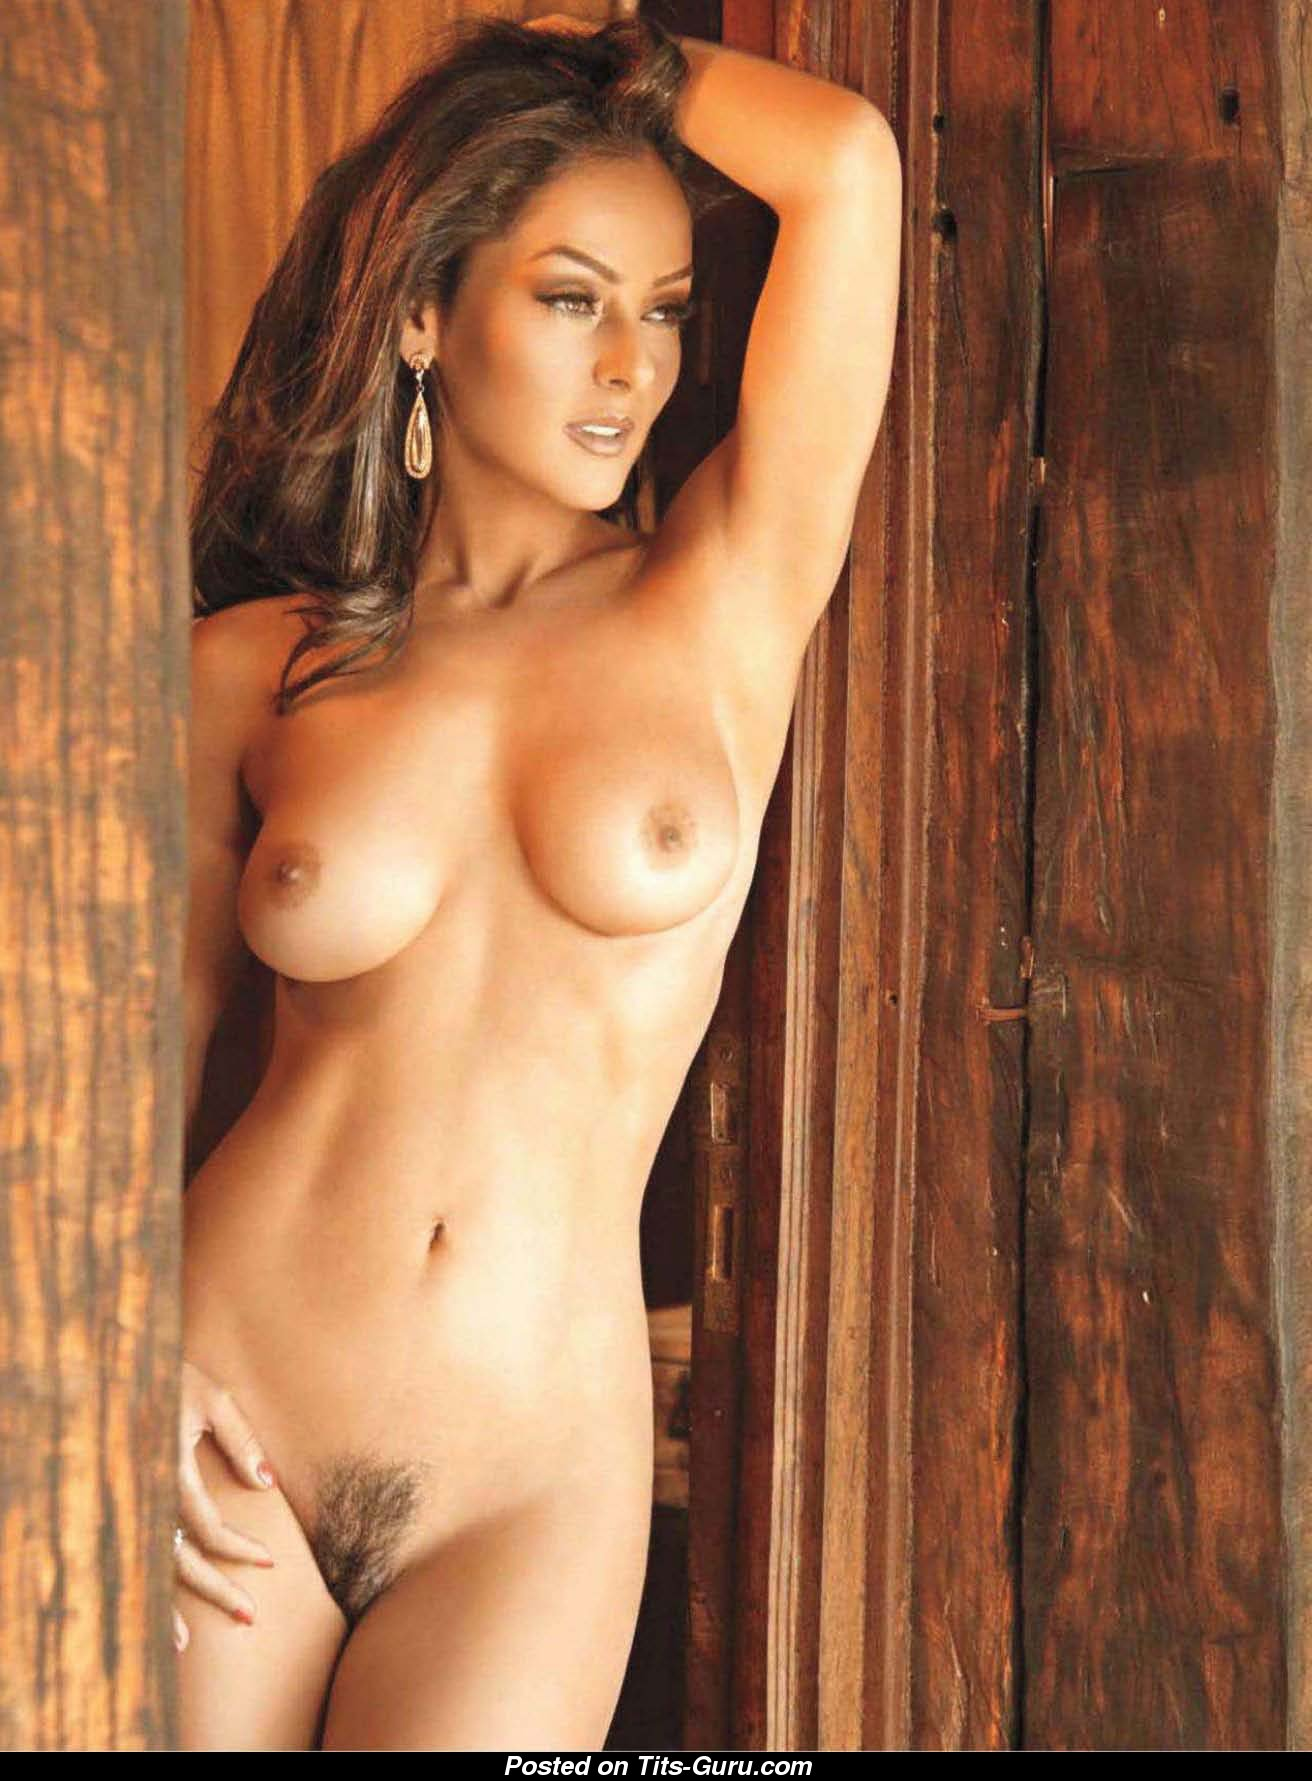 Apologise, but, Andrea garcia nude hairy are